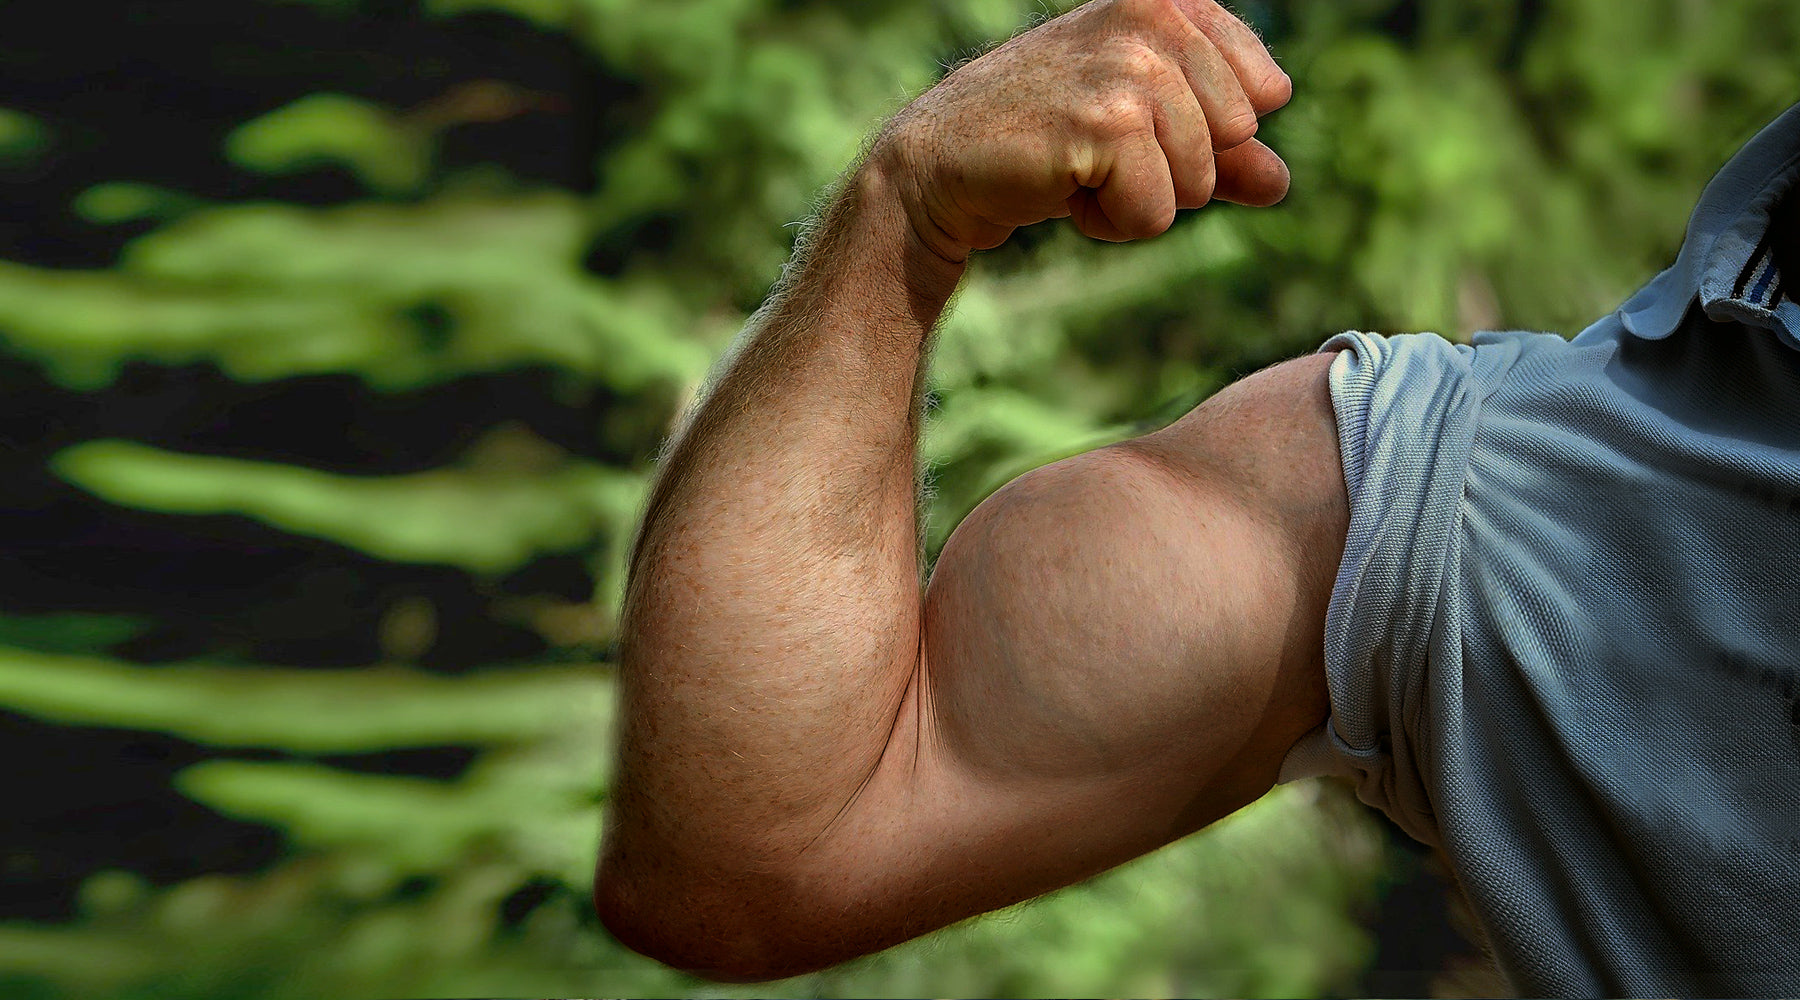 Man flexing bicep with a very strong arm, showing only shoulder and arm